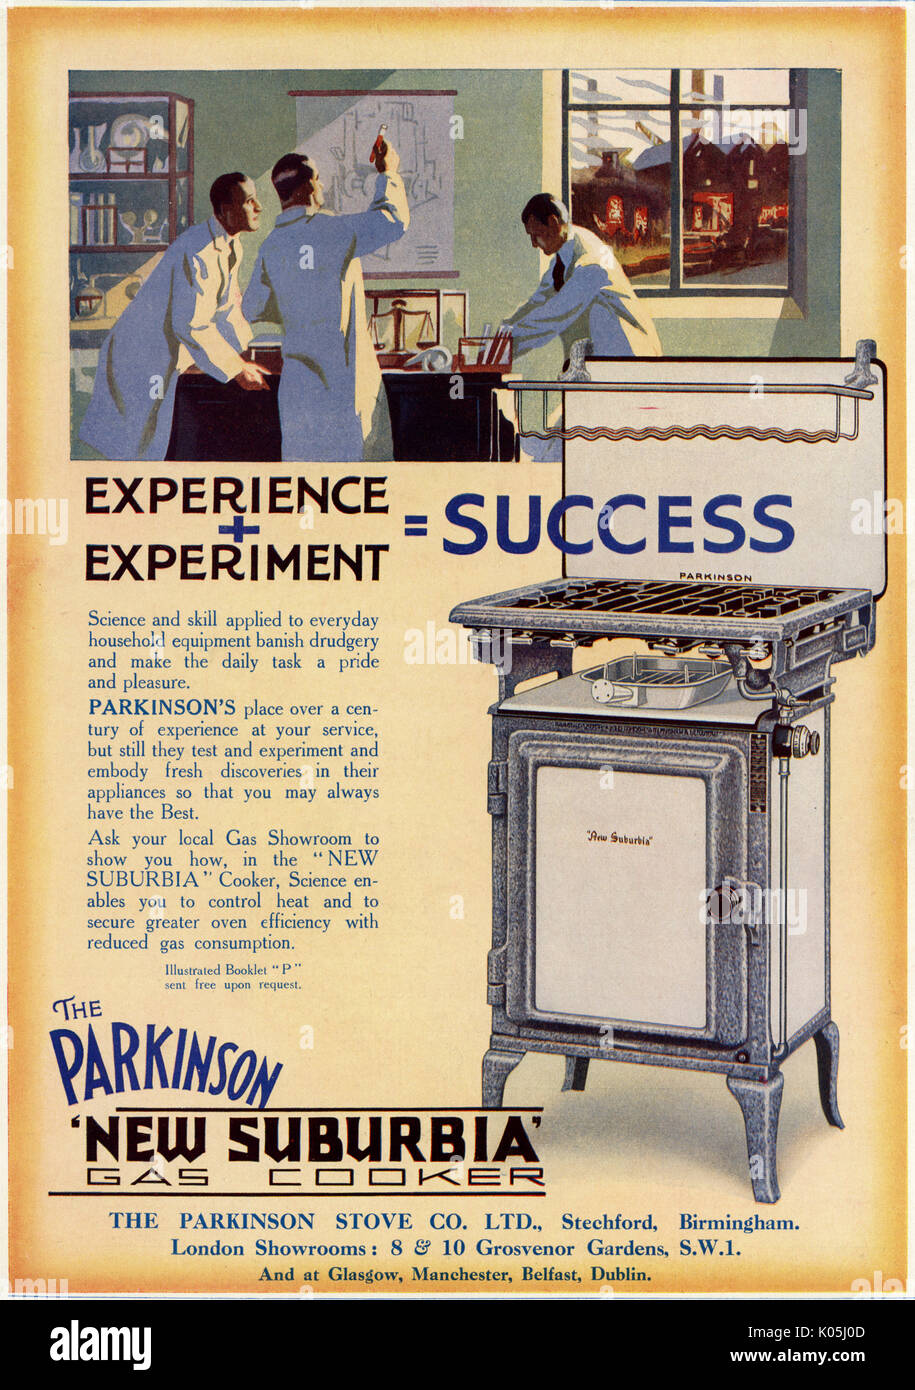 The Parkinson 'New Suburbia' gas cooker - tested by scientists !        Date: 1929 - Stock Image